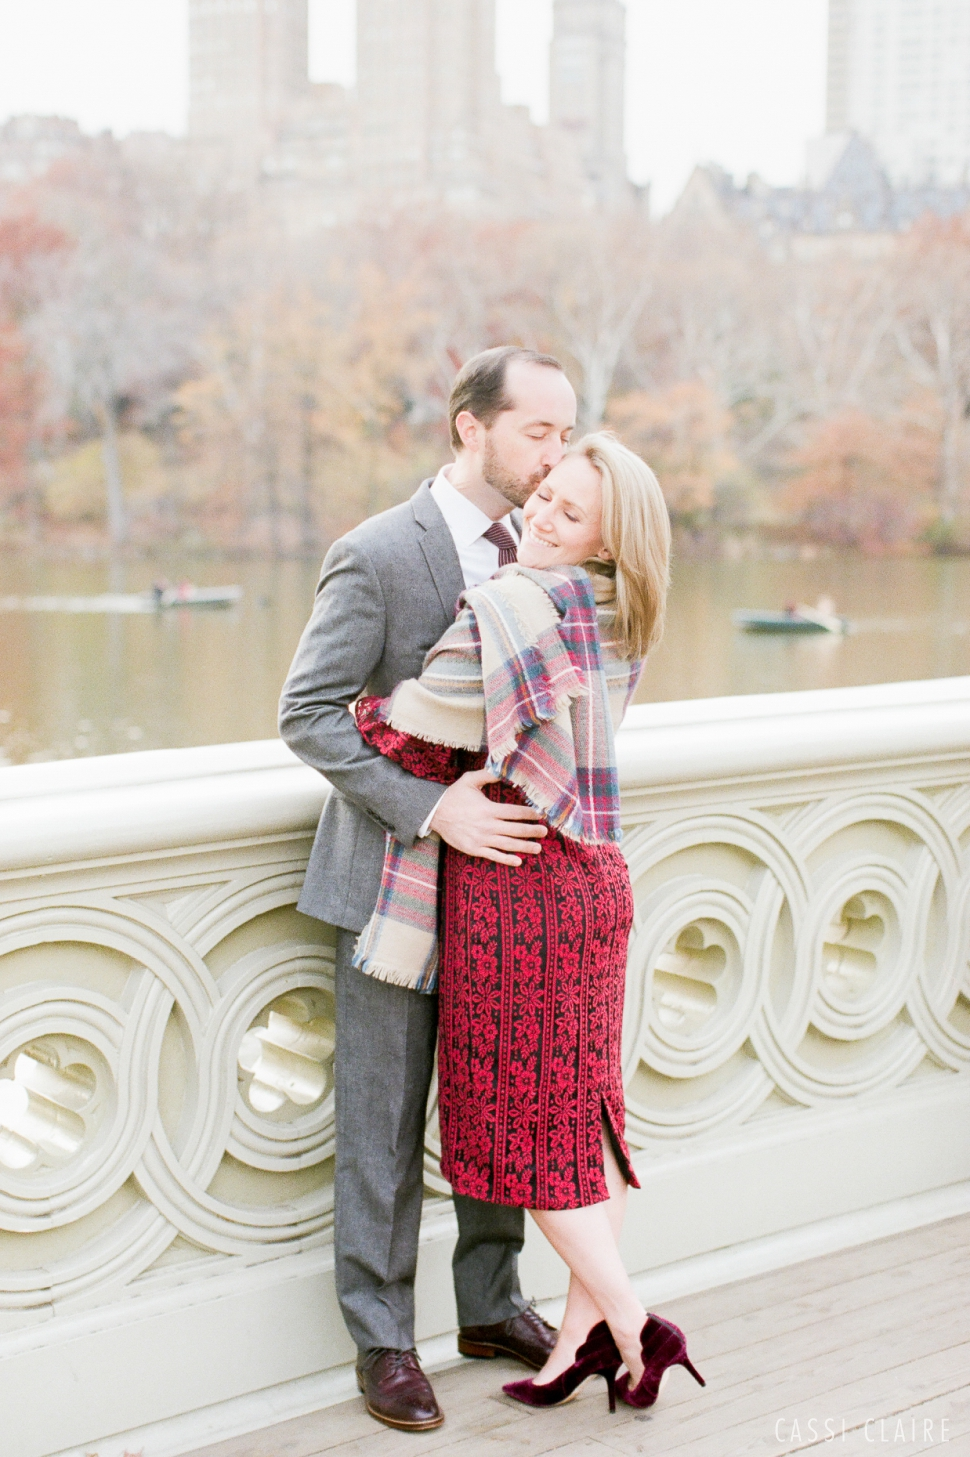 Christmas-in-Central-Park_CassiClaire_05.jpg